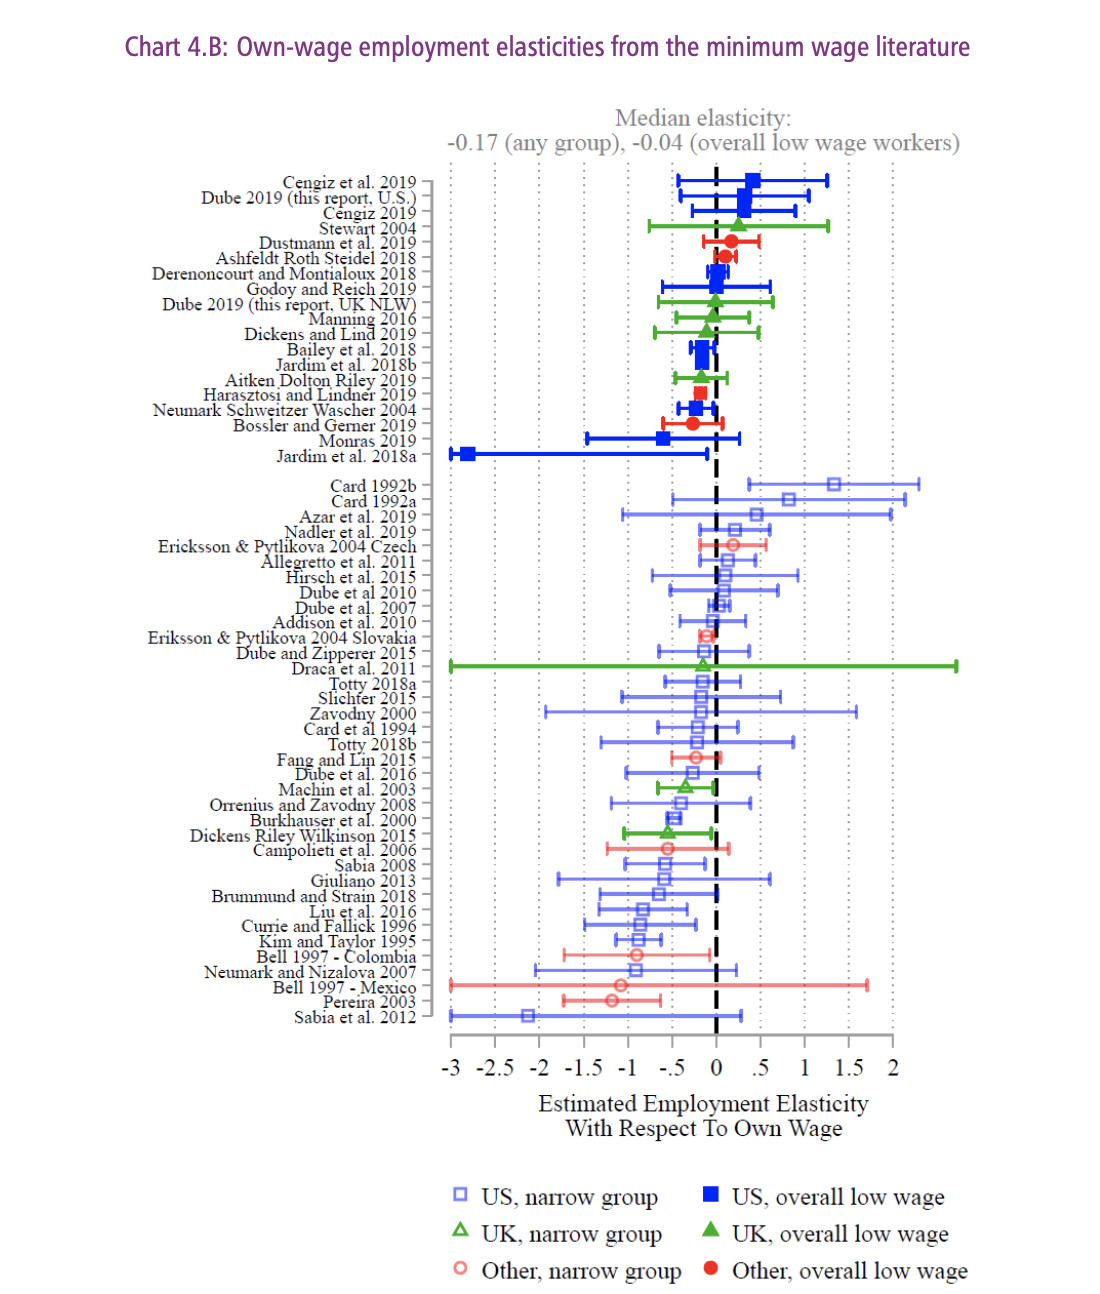 """Chart: """"Own-wage employment elasticities from the minimum wage literature"""""""